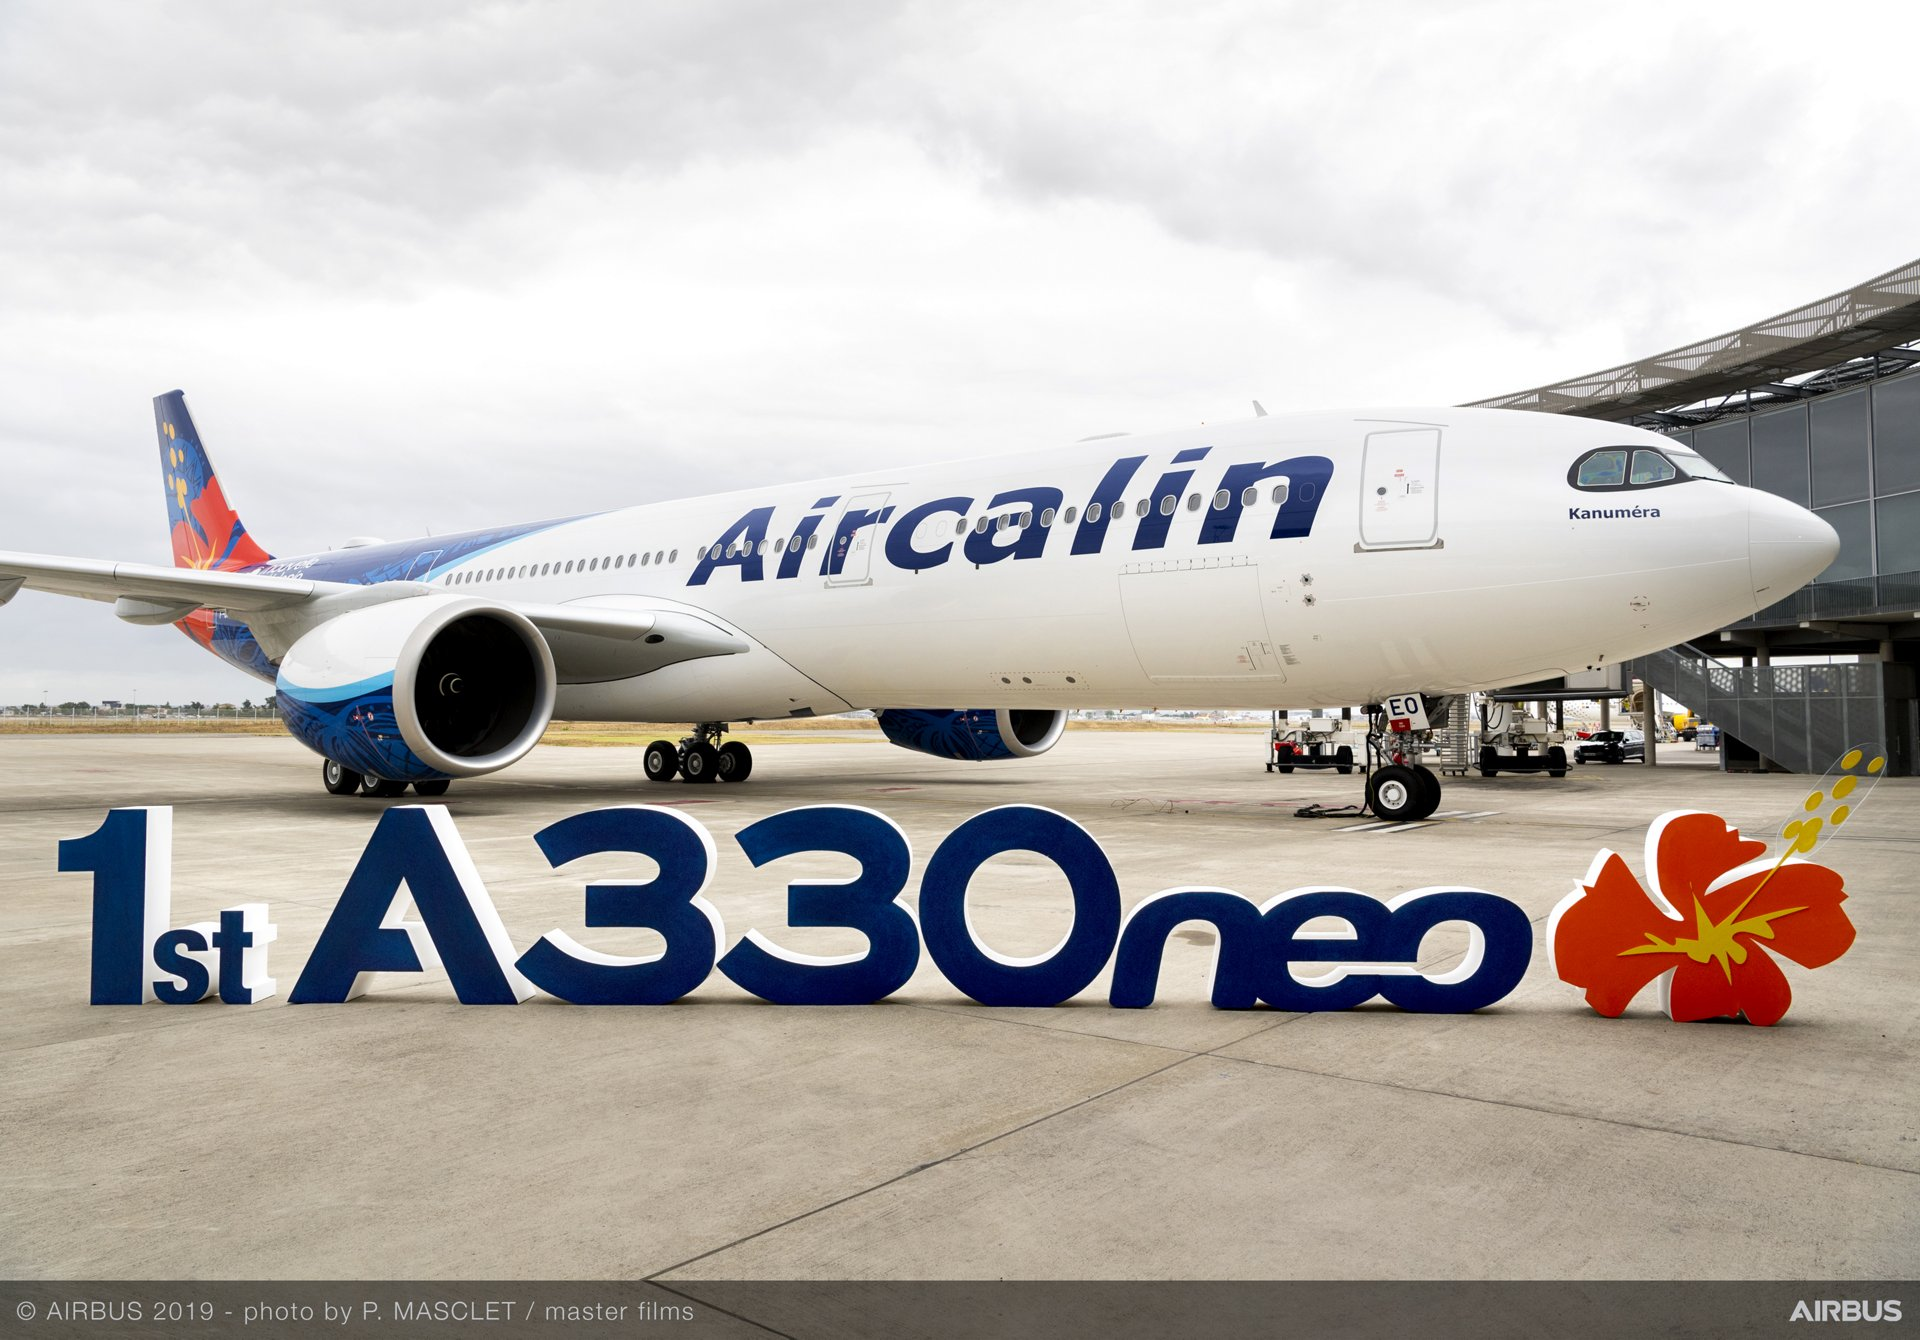 Aircalin's first A330neo – delivered by Airbus in July 2019 – is configured in a comfortable three-class layout with 291 seats